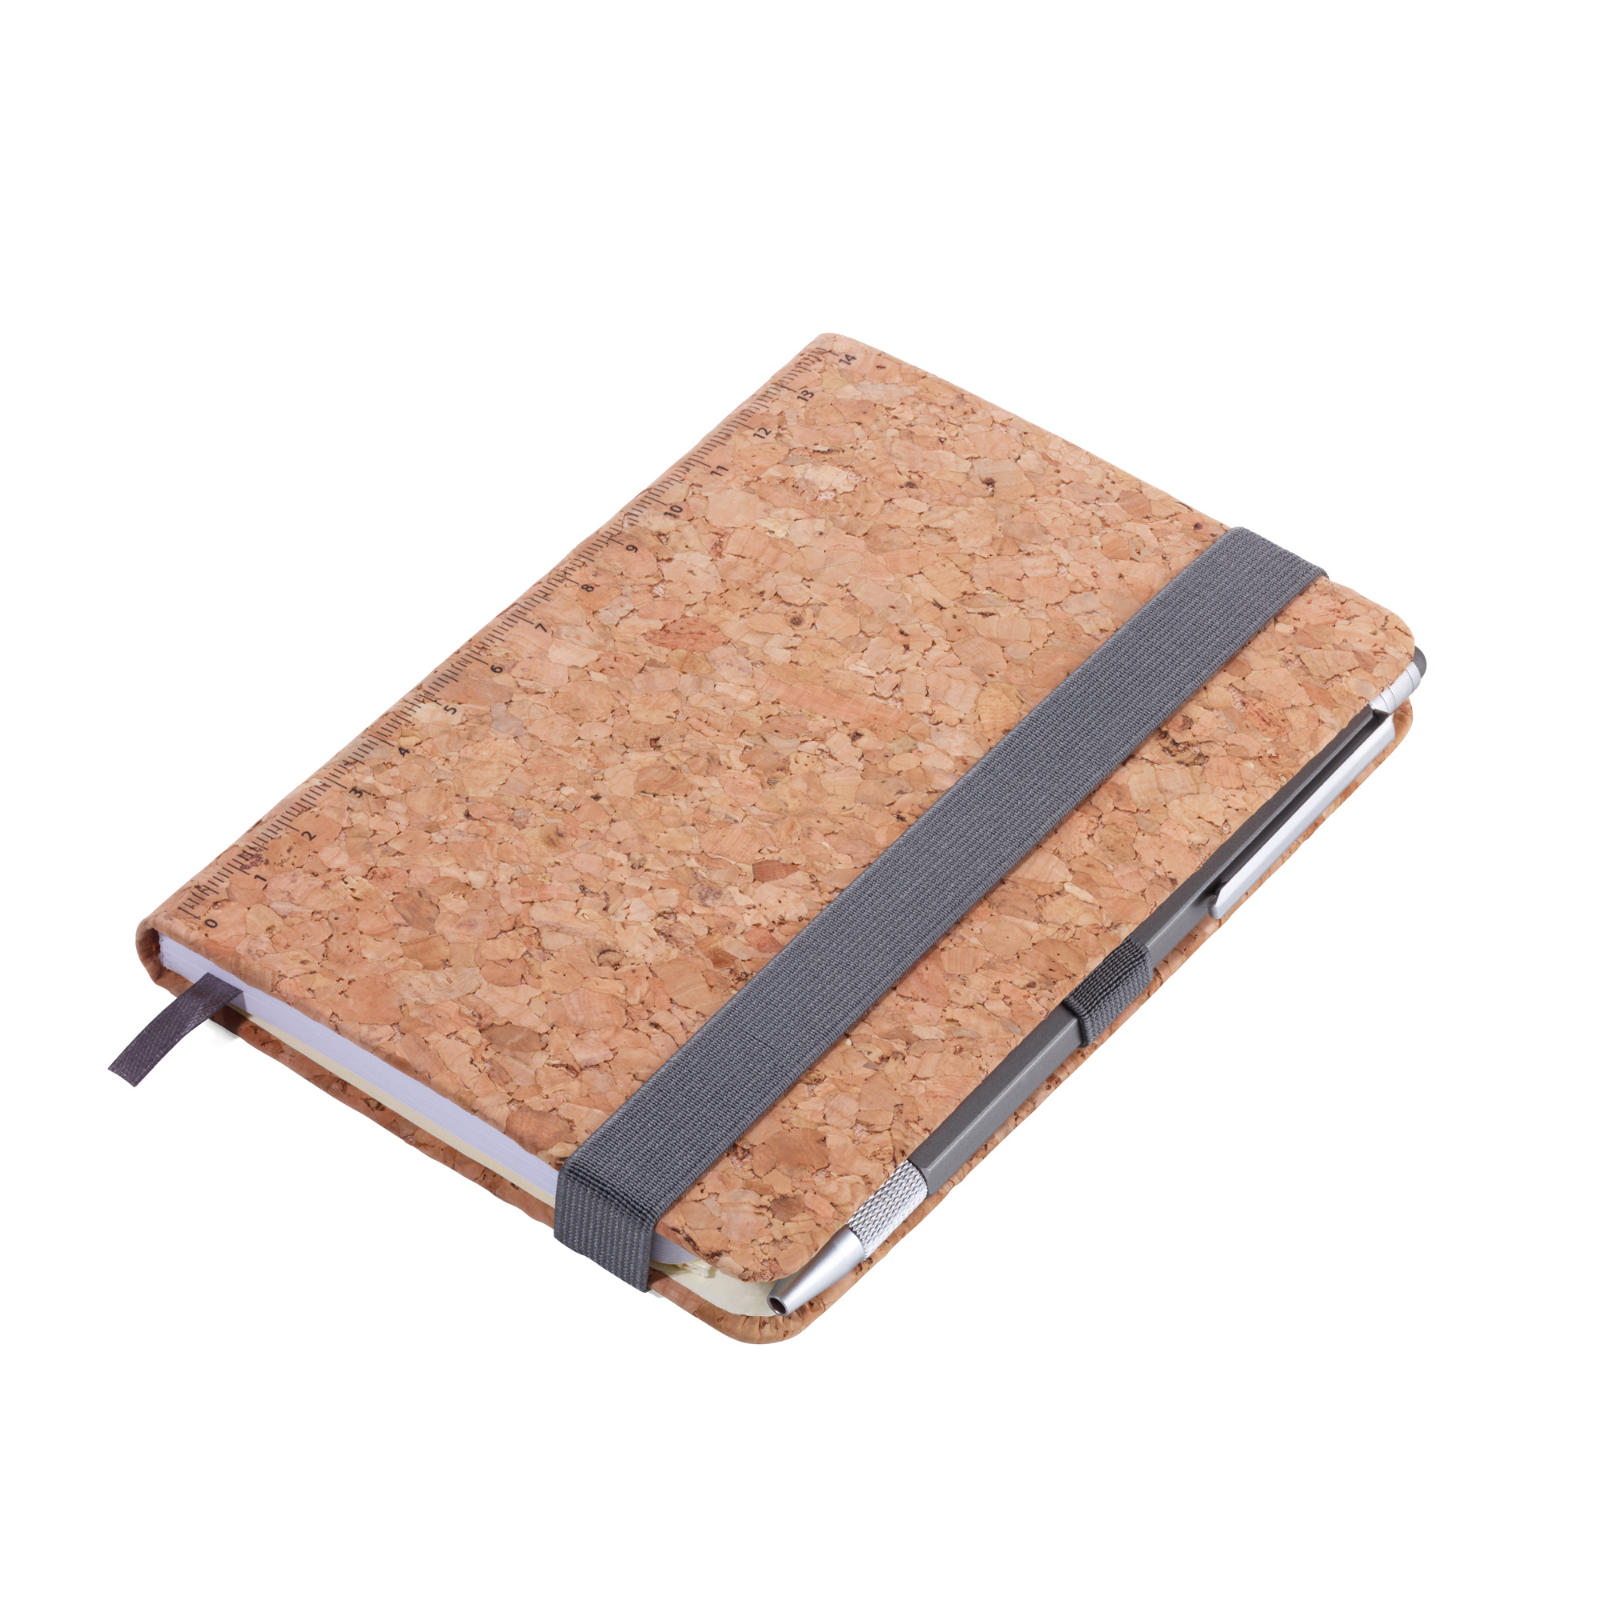 Troika A6 Notebook with Slim Construction Pen Cork